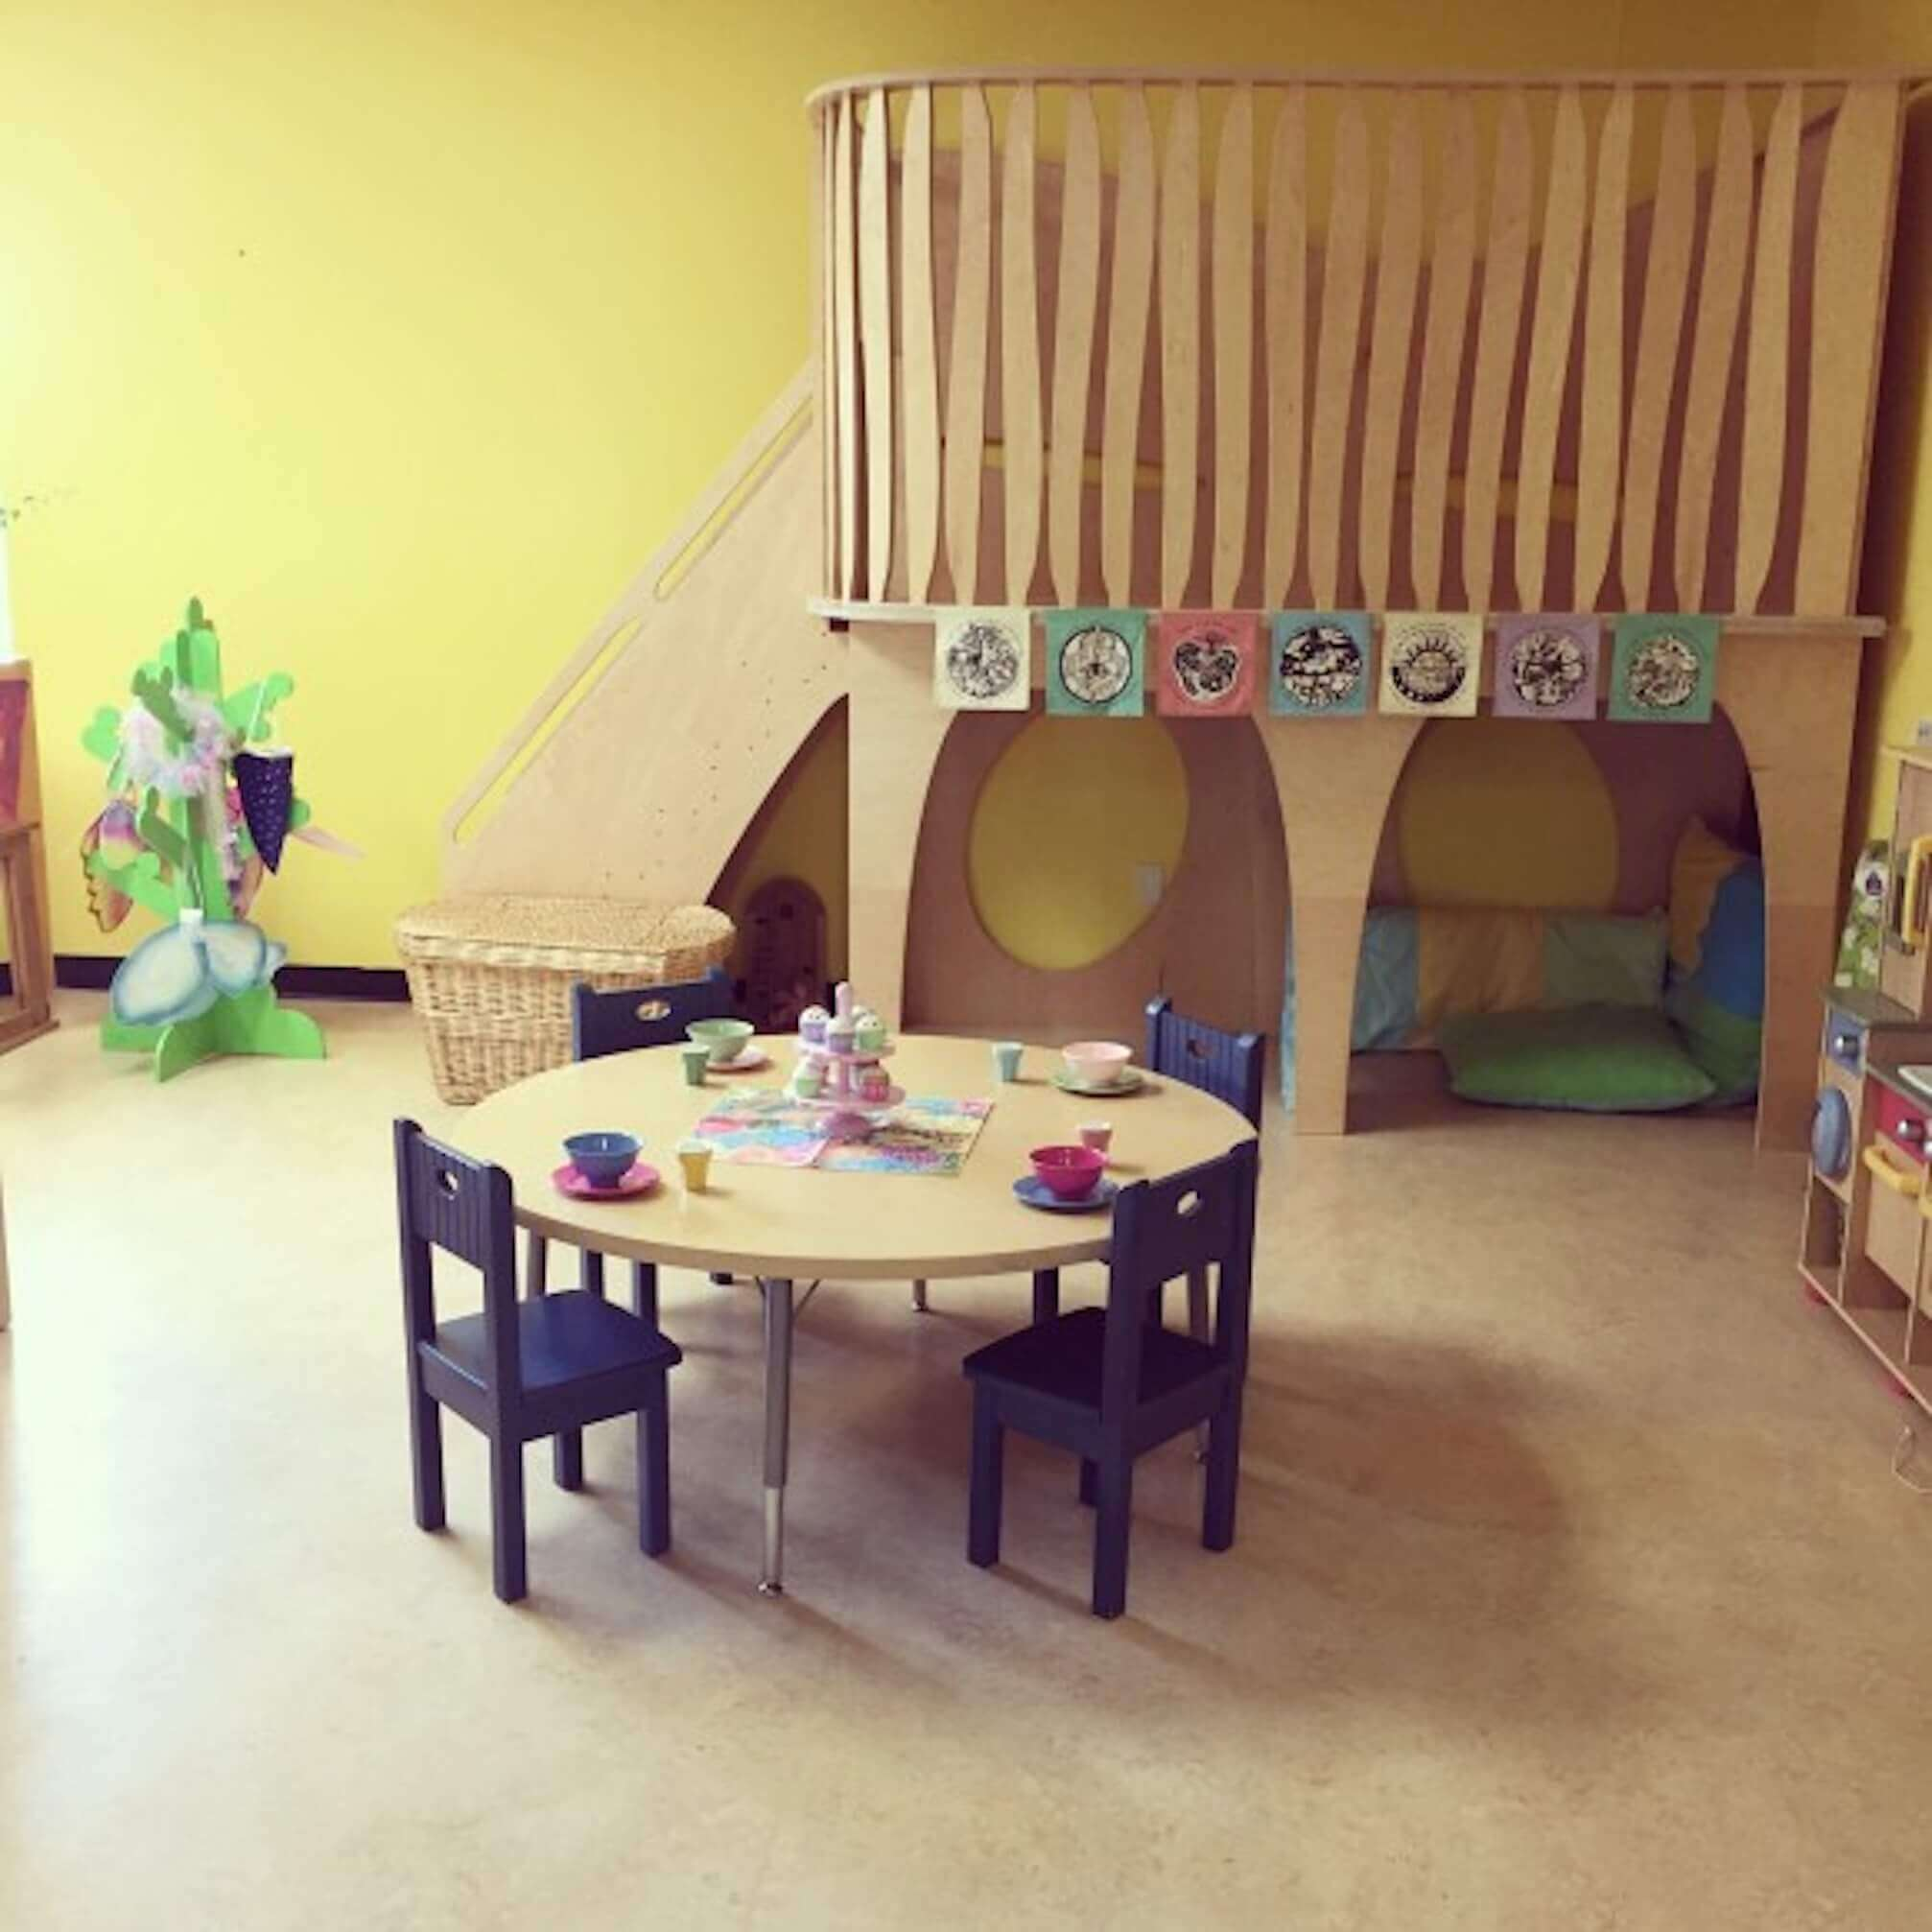 Initial Reactions and Conversations Sparked by Natural Pod's Play Loft